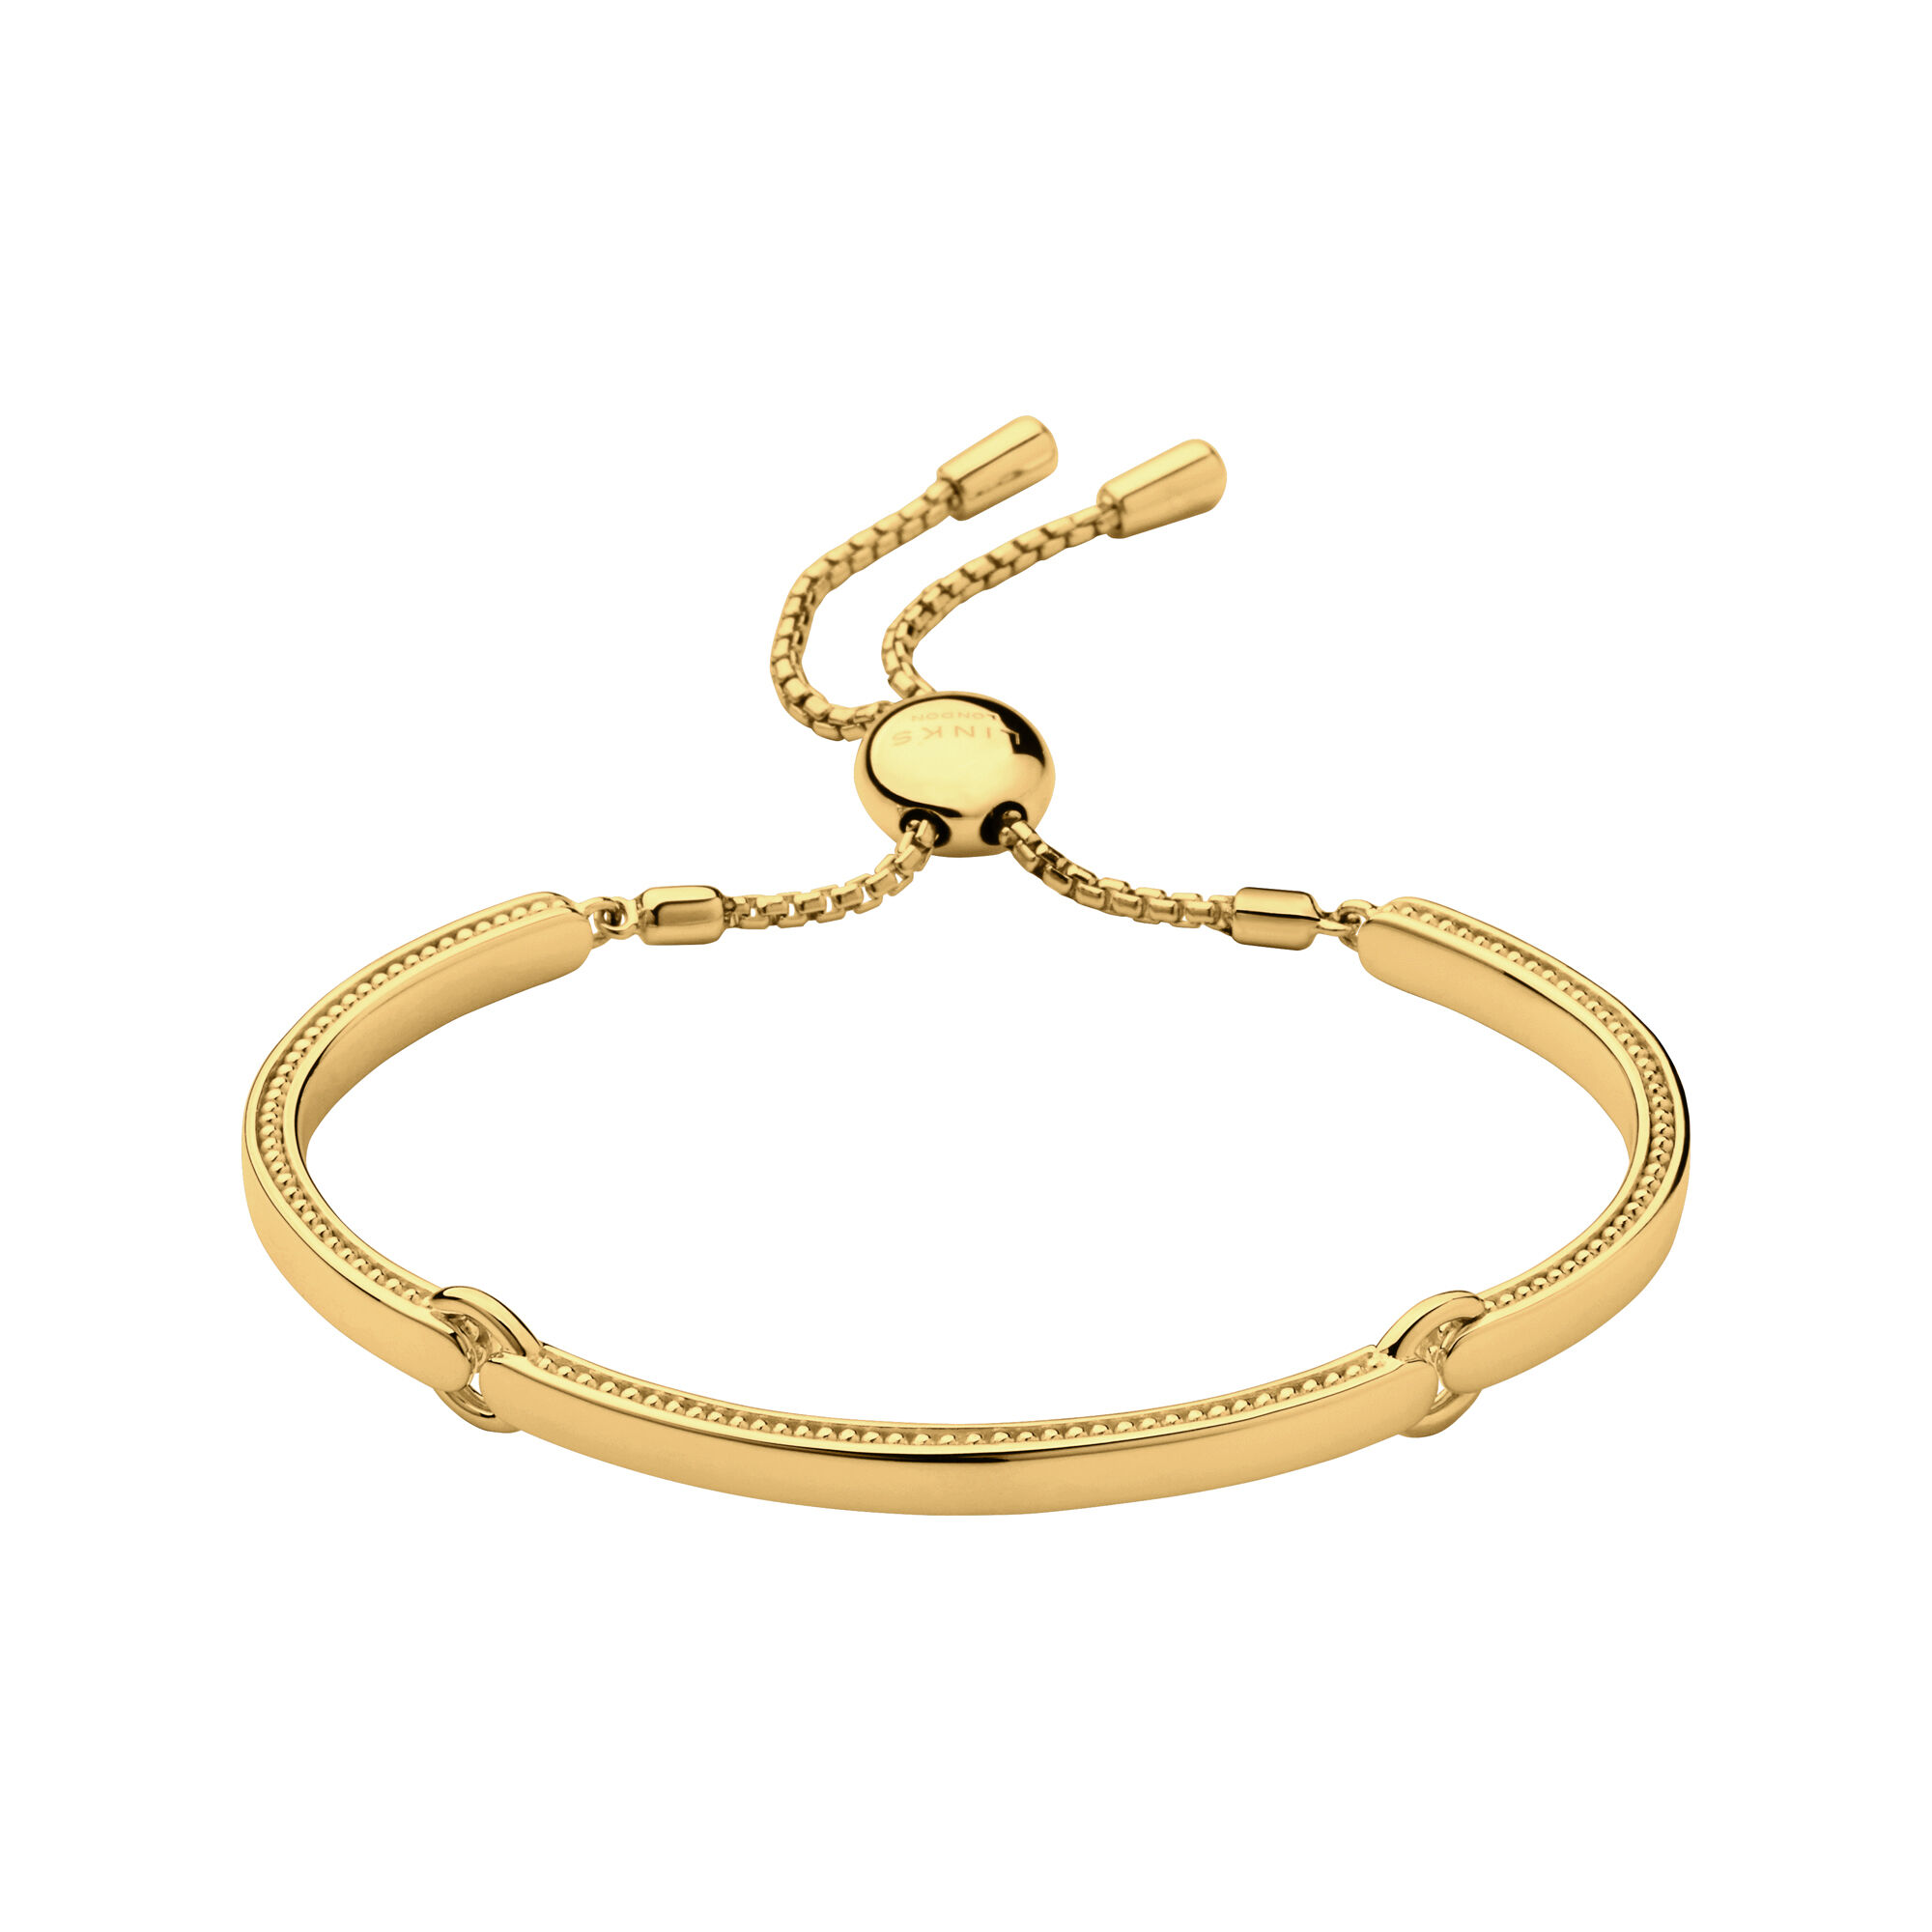 bracelet at available karat priced gold style pin bangle stunning rope yellow bangles